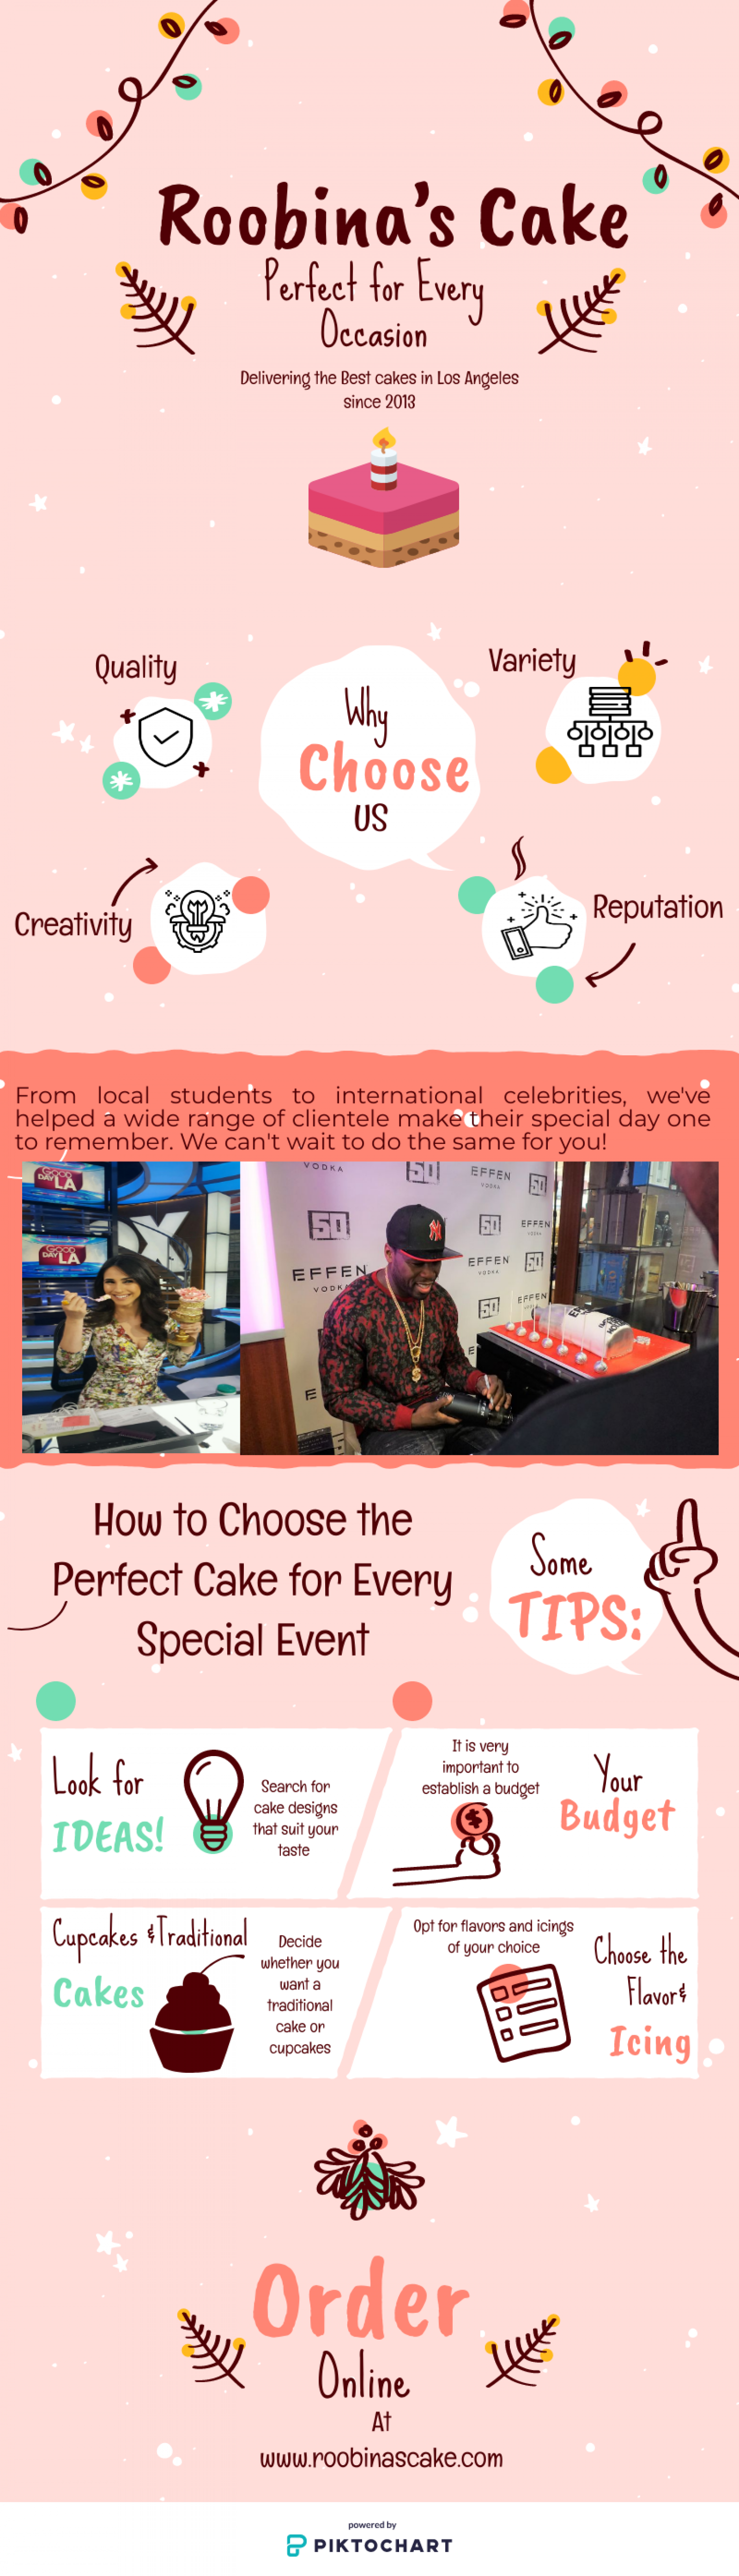 Delivering the Best Cakes in Los Angeles - Roobina's Cake Infographic